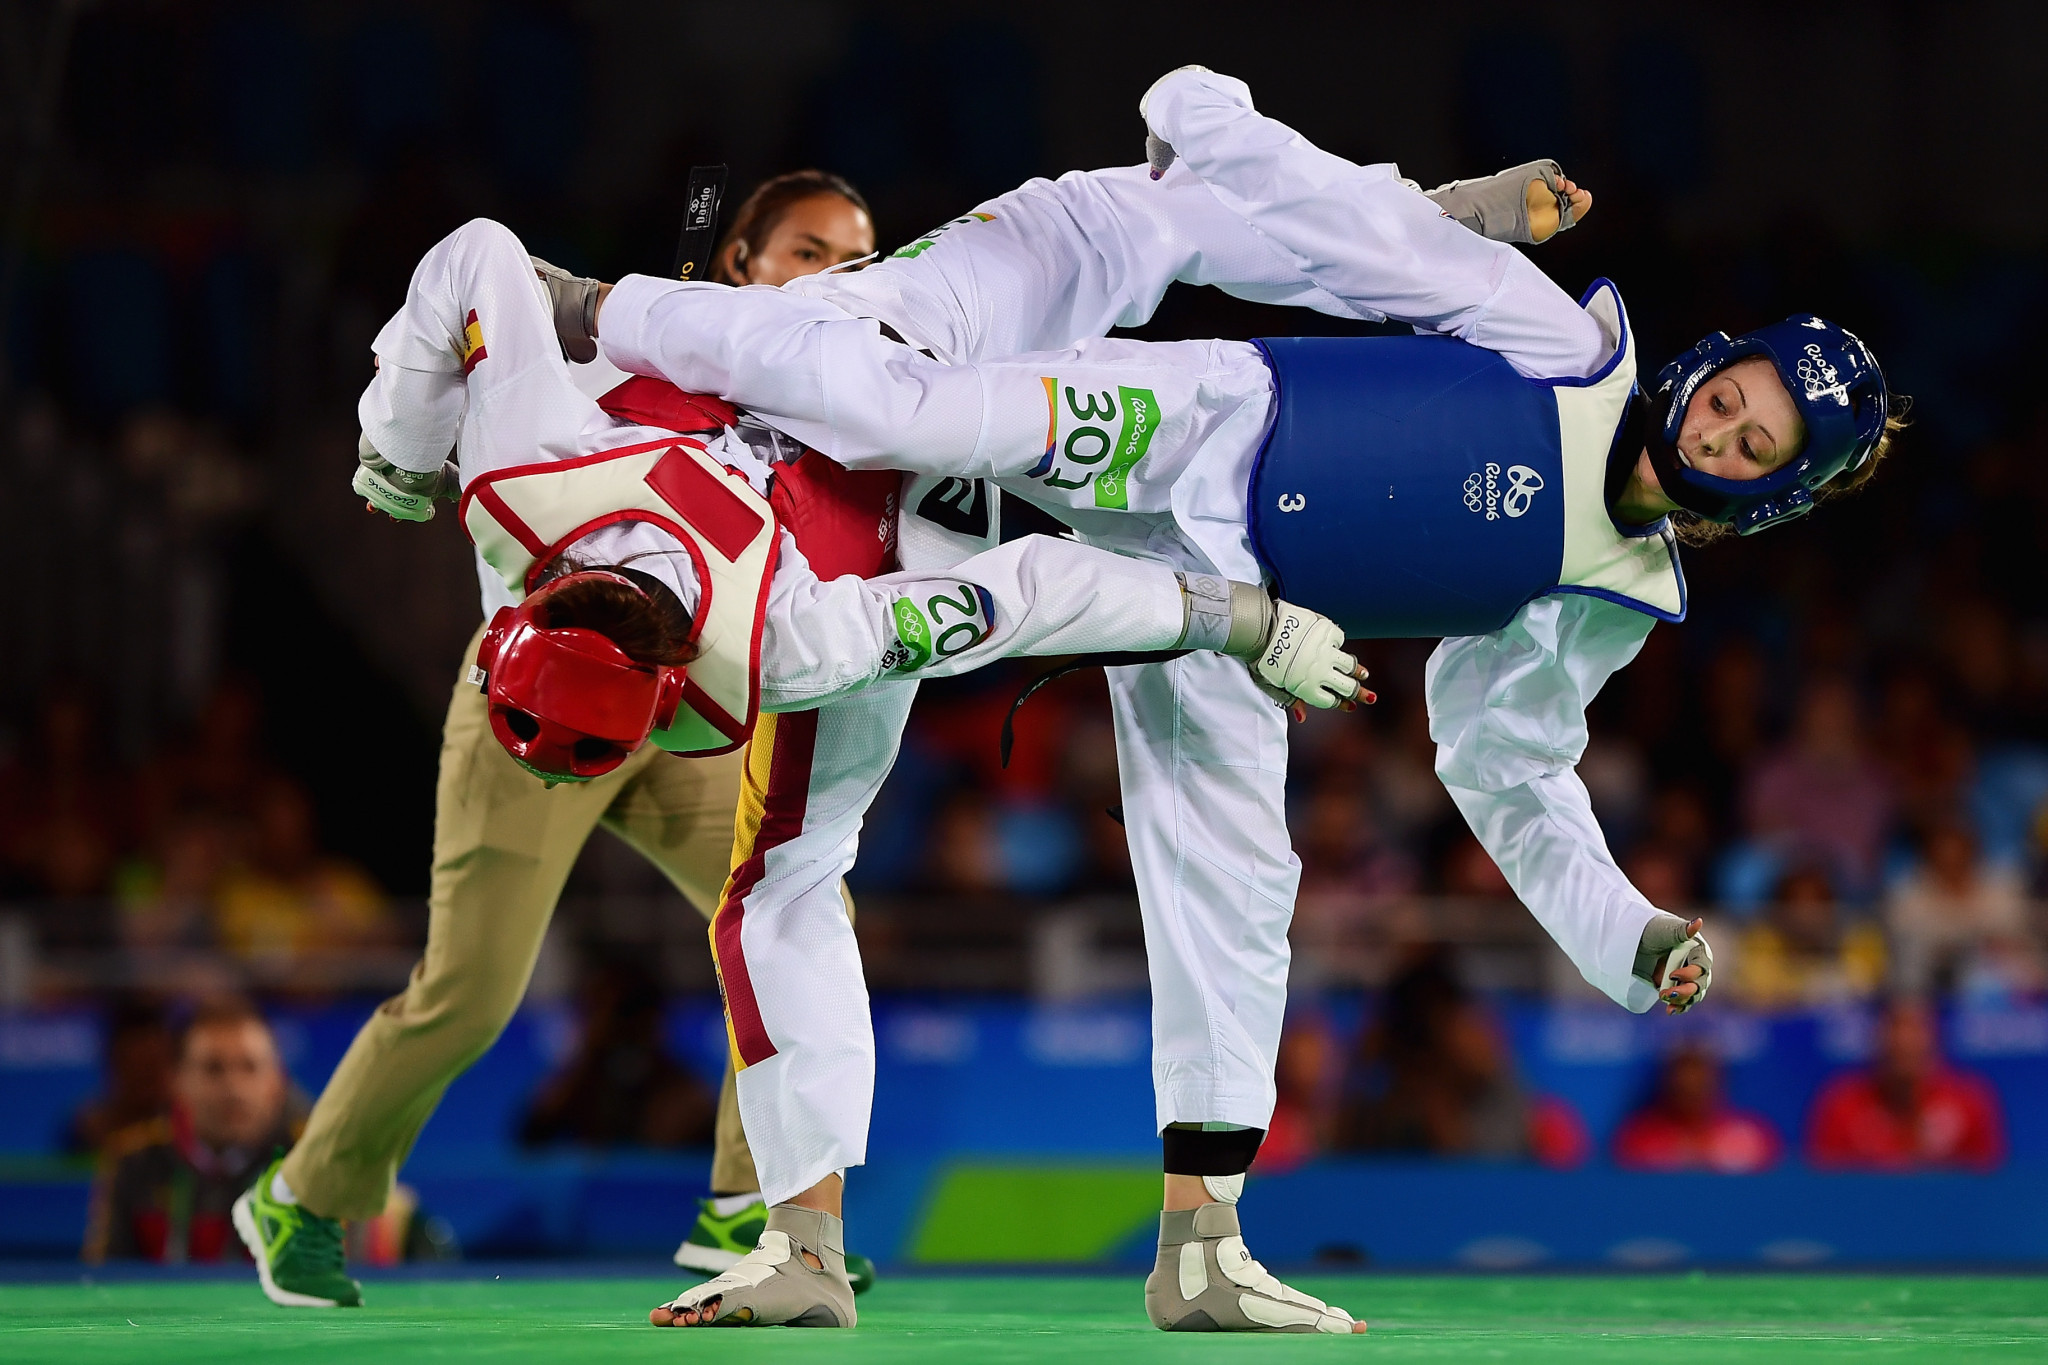 Taekwondo's chances of being included on Birmingham 2022 programme ended day after campaign launched